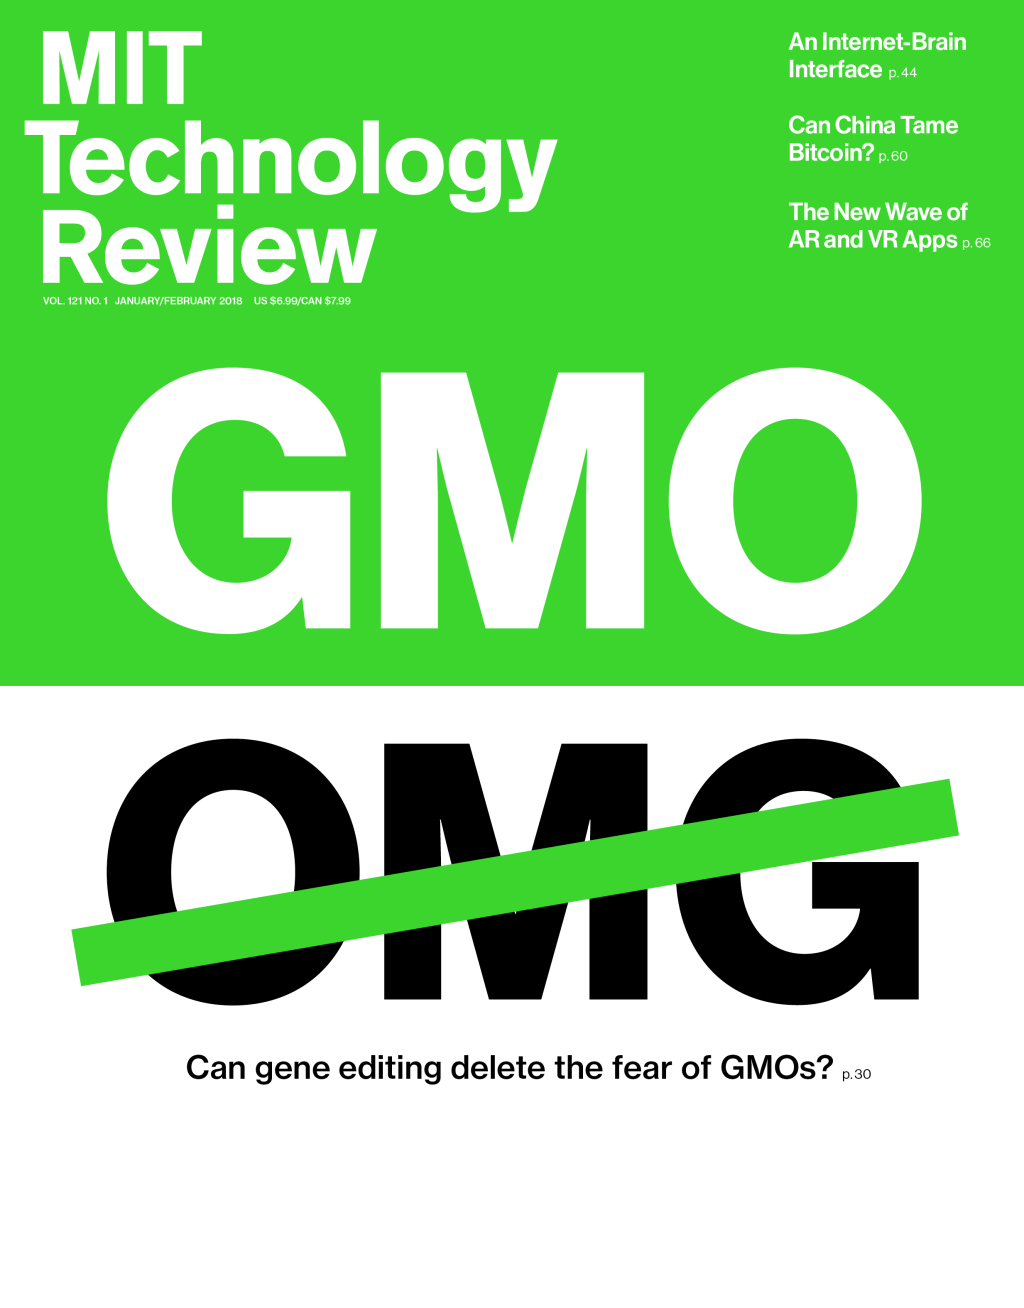 Can gene editing delete the fear of GMOs?